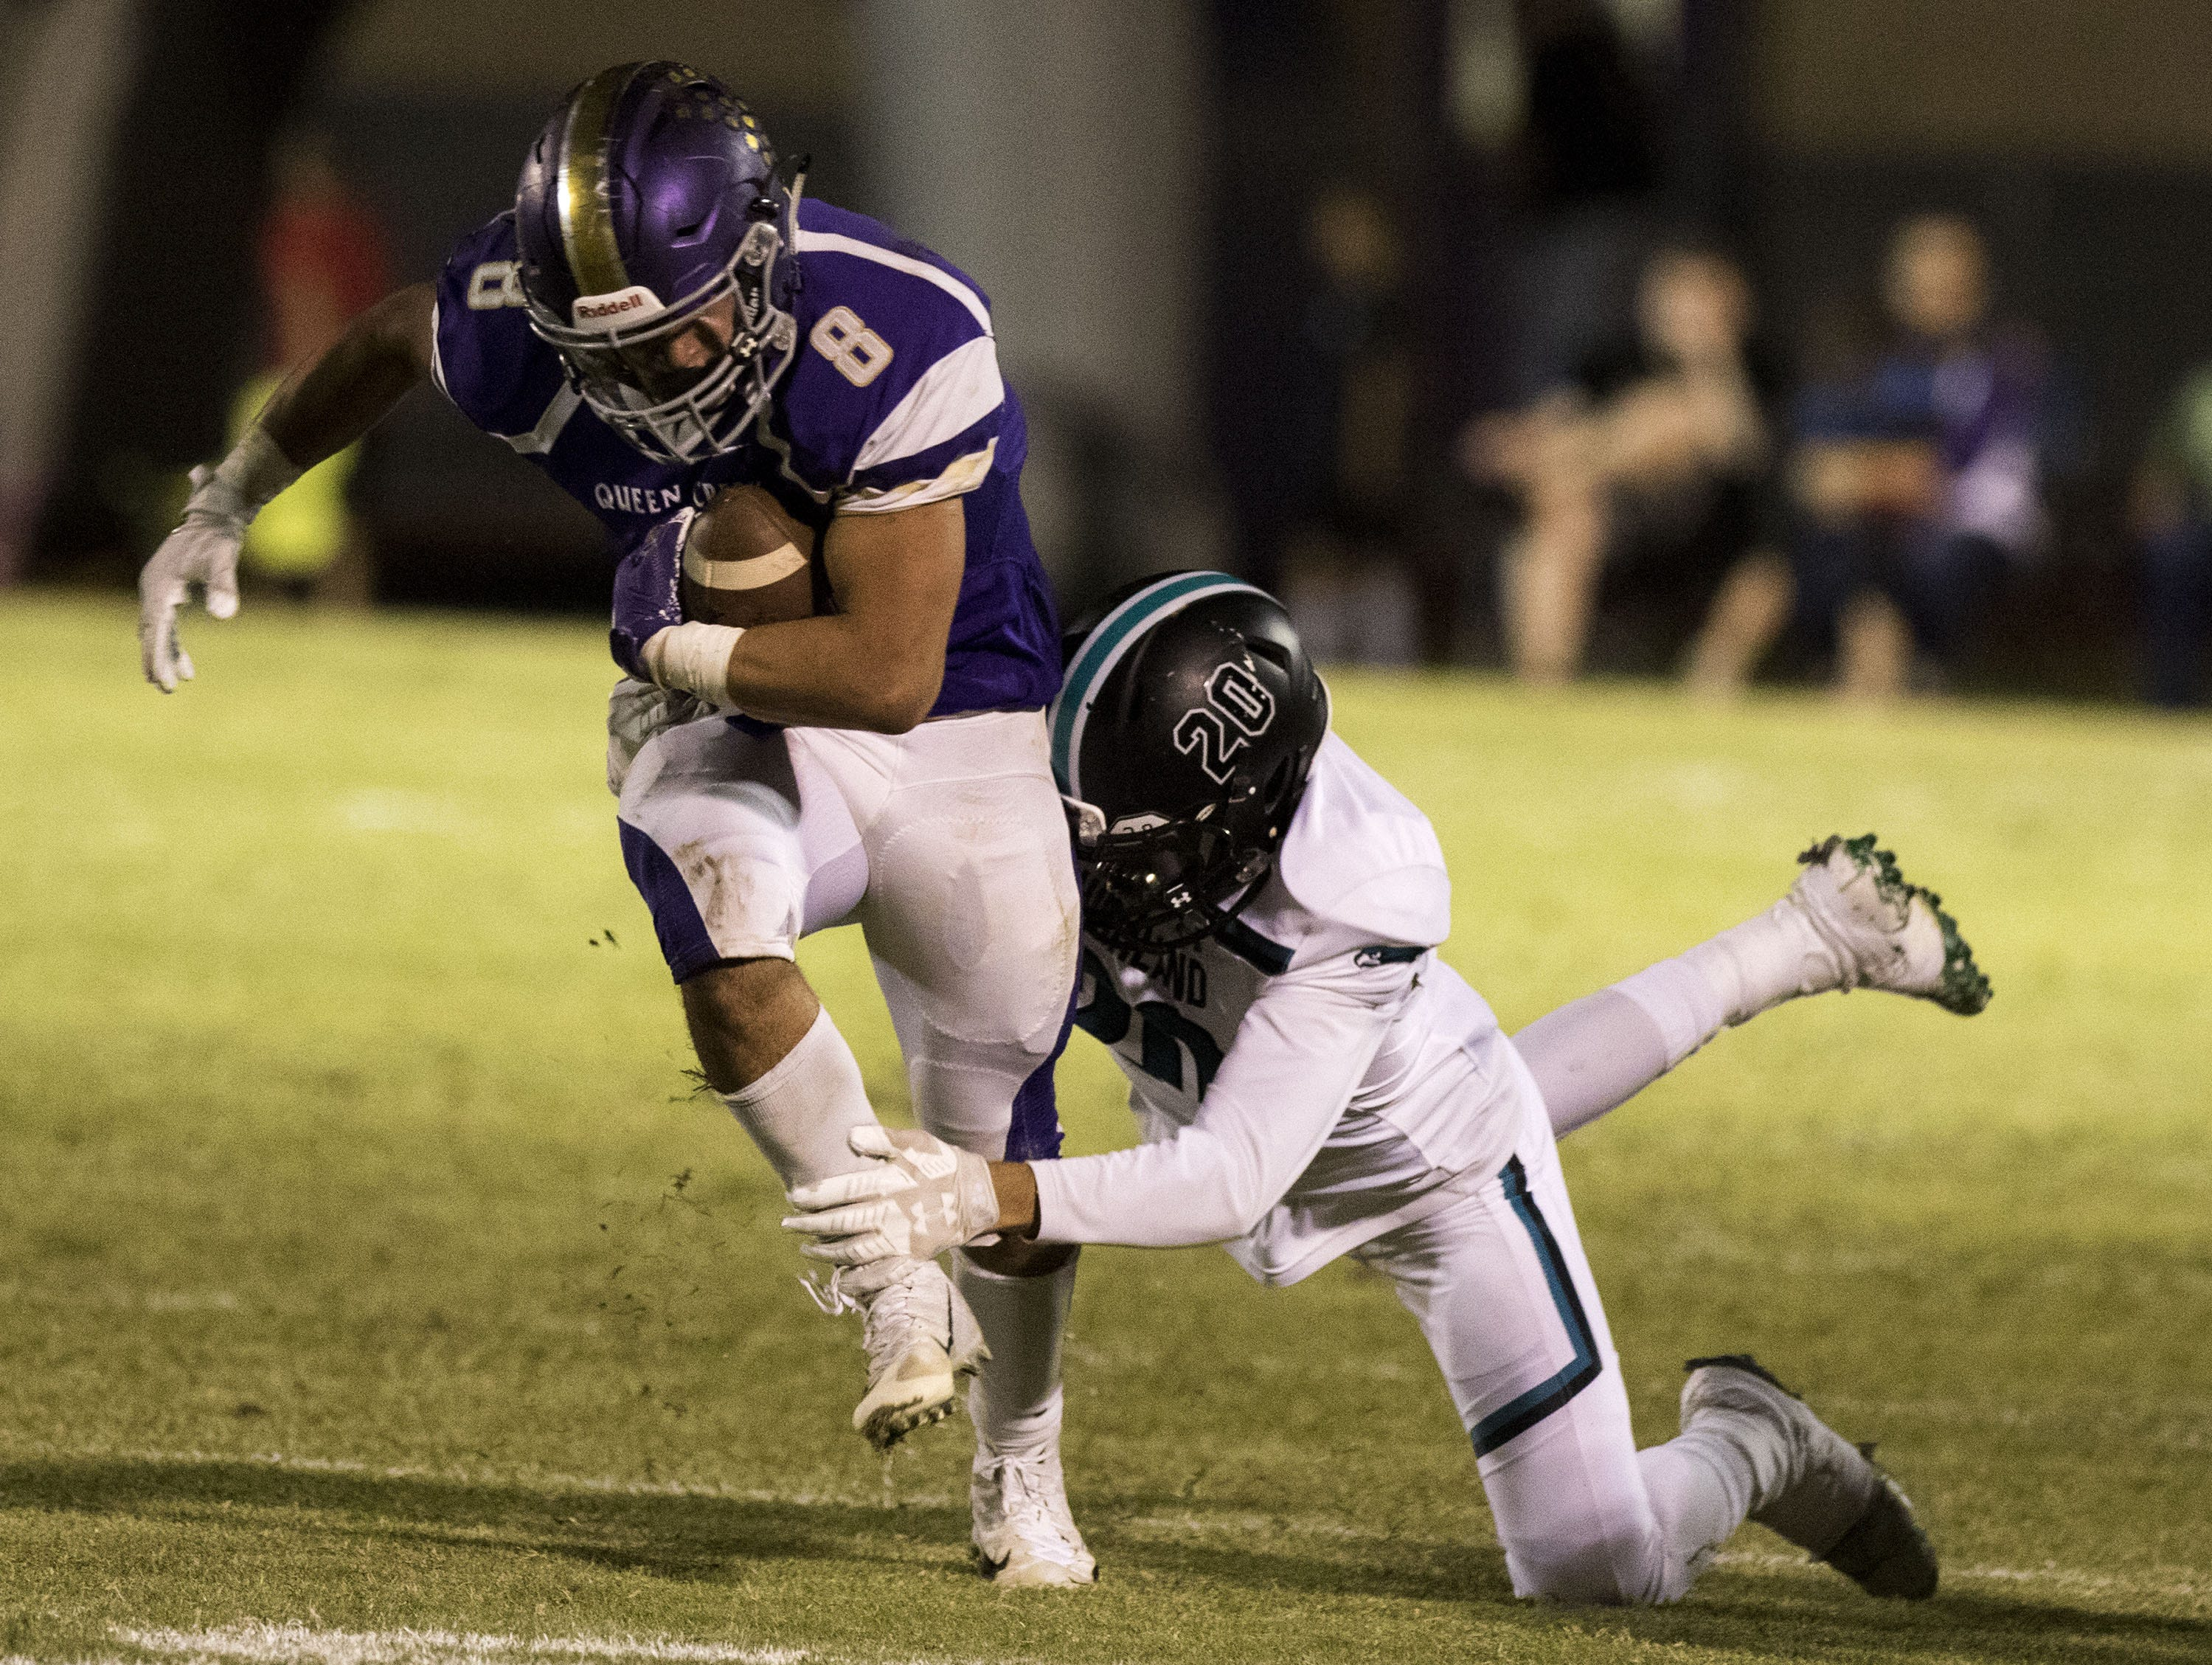 Queen Creek's Dylan Borja gets wrapped up by Highland's Ryan Martinez during them game in Queen Creek Friday, Oct. 19, 2018. #azhsfb